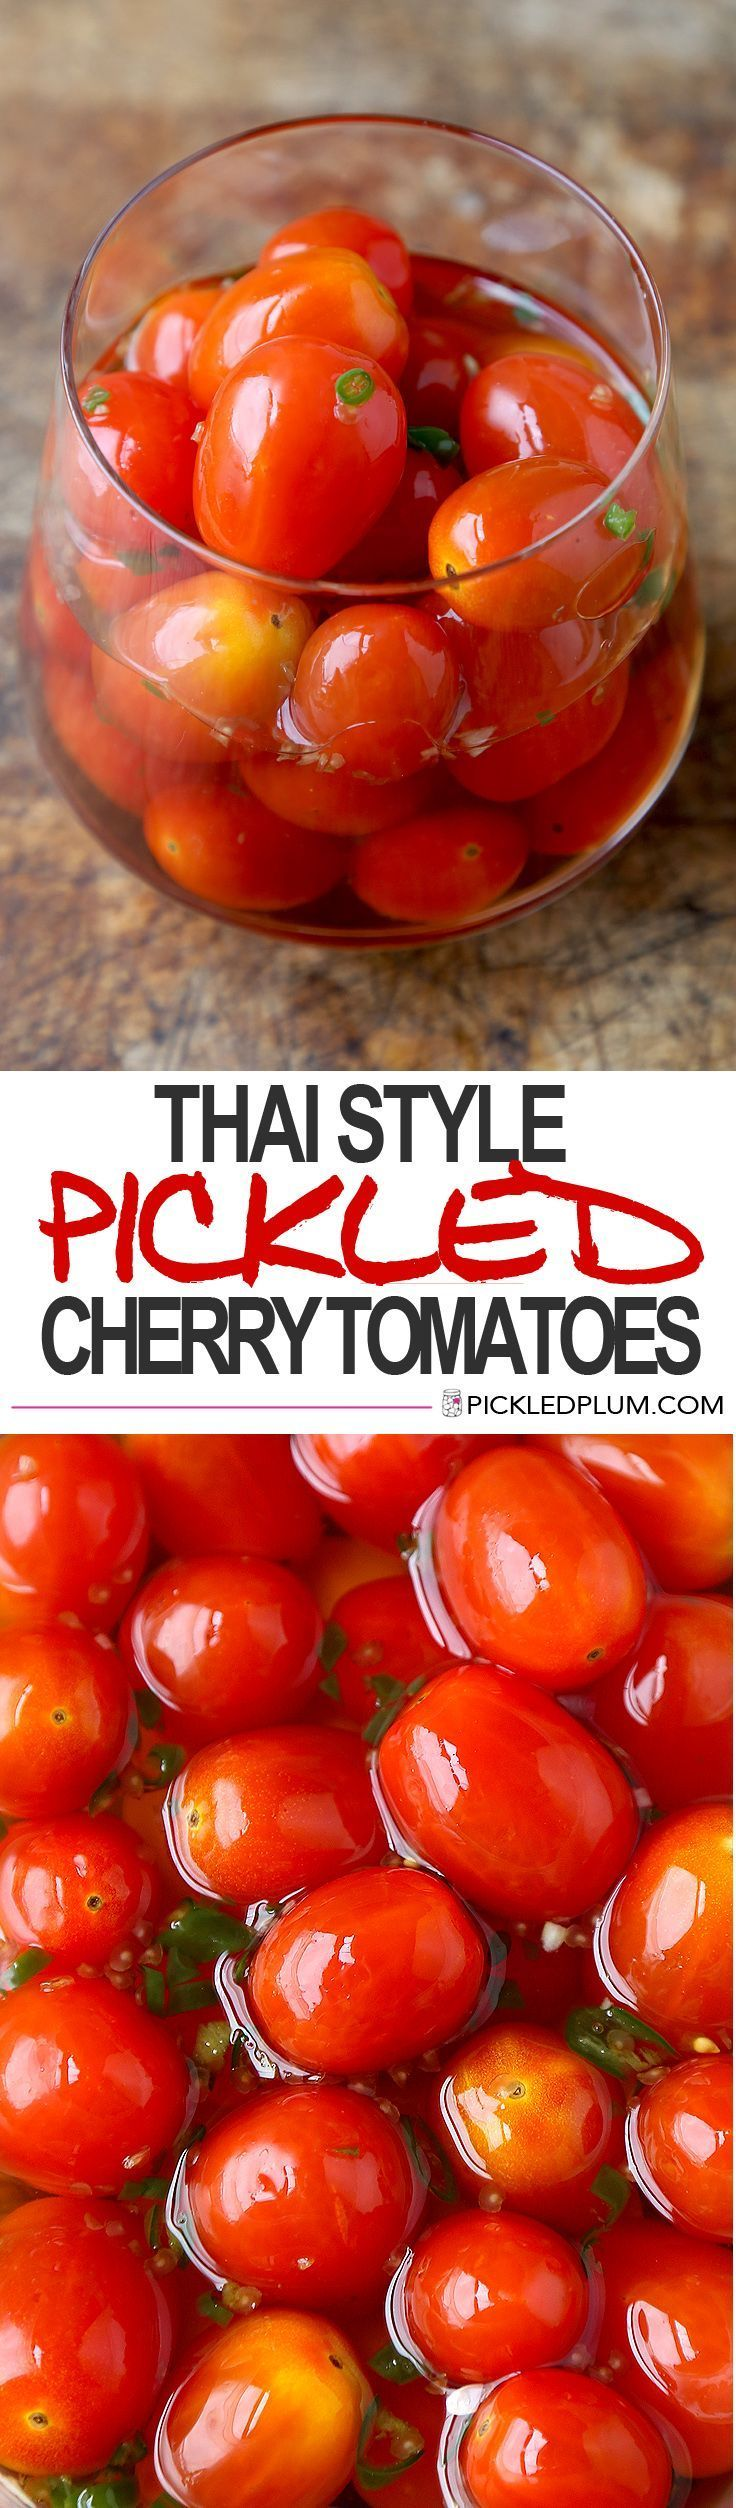 best images about pickled in a jam u things i relish on